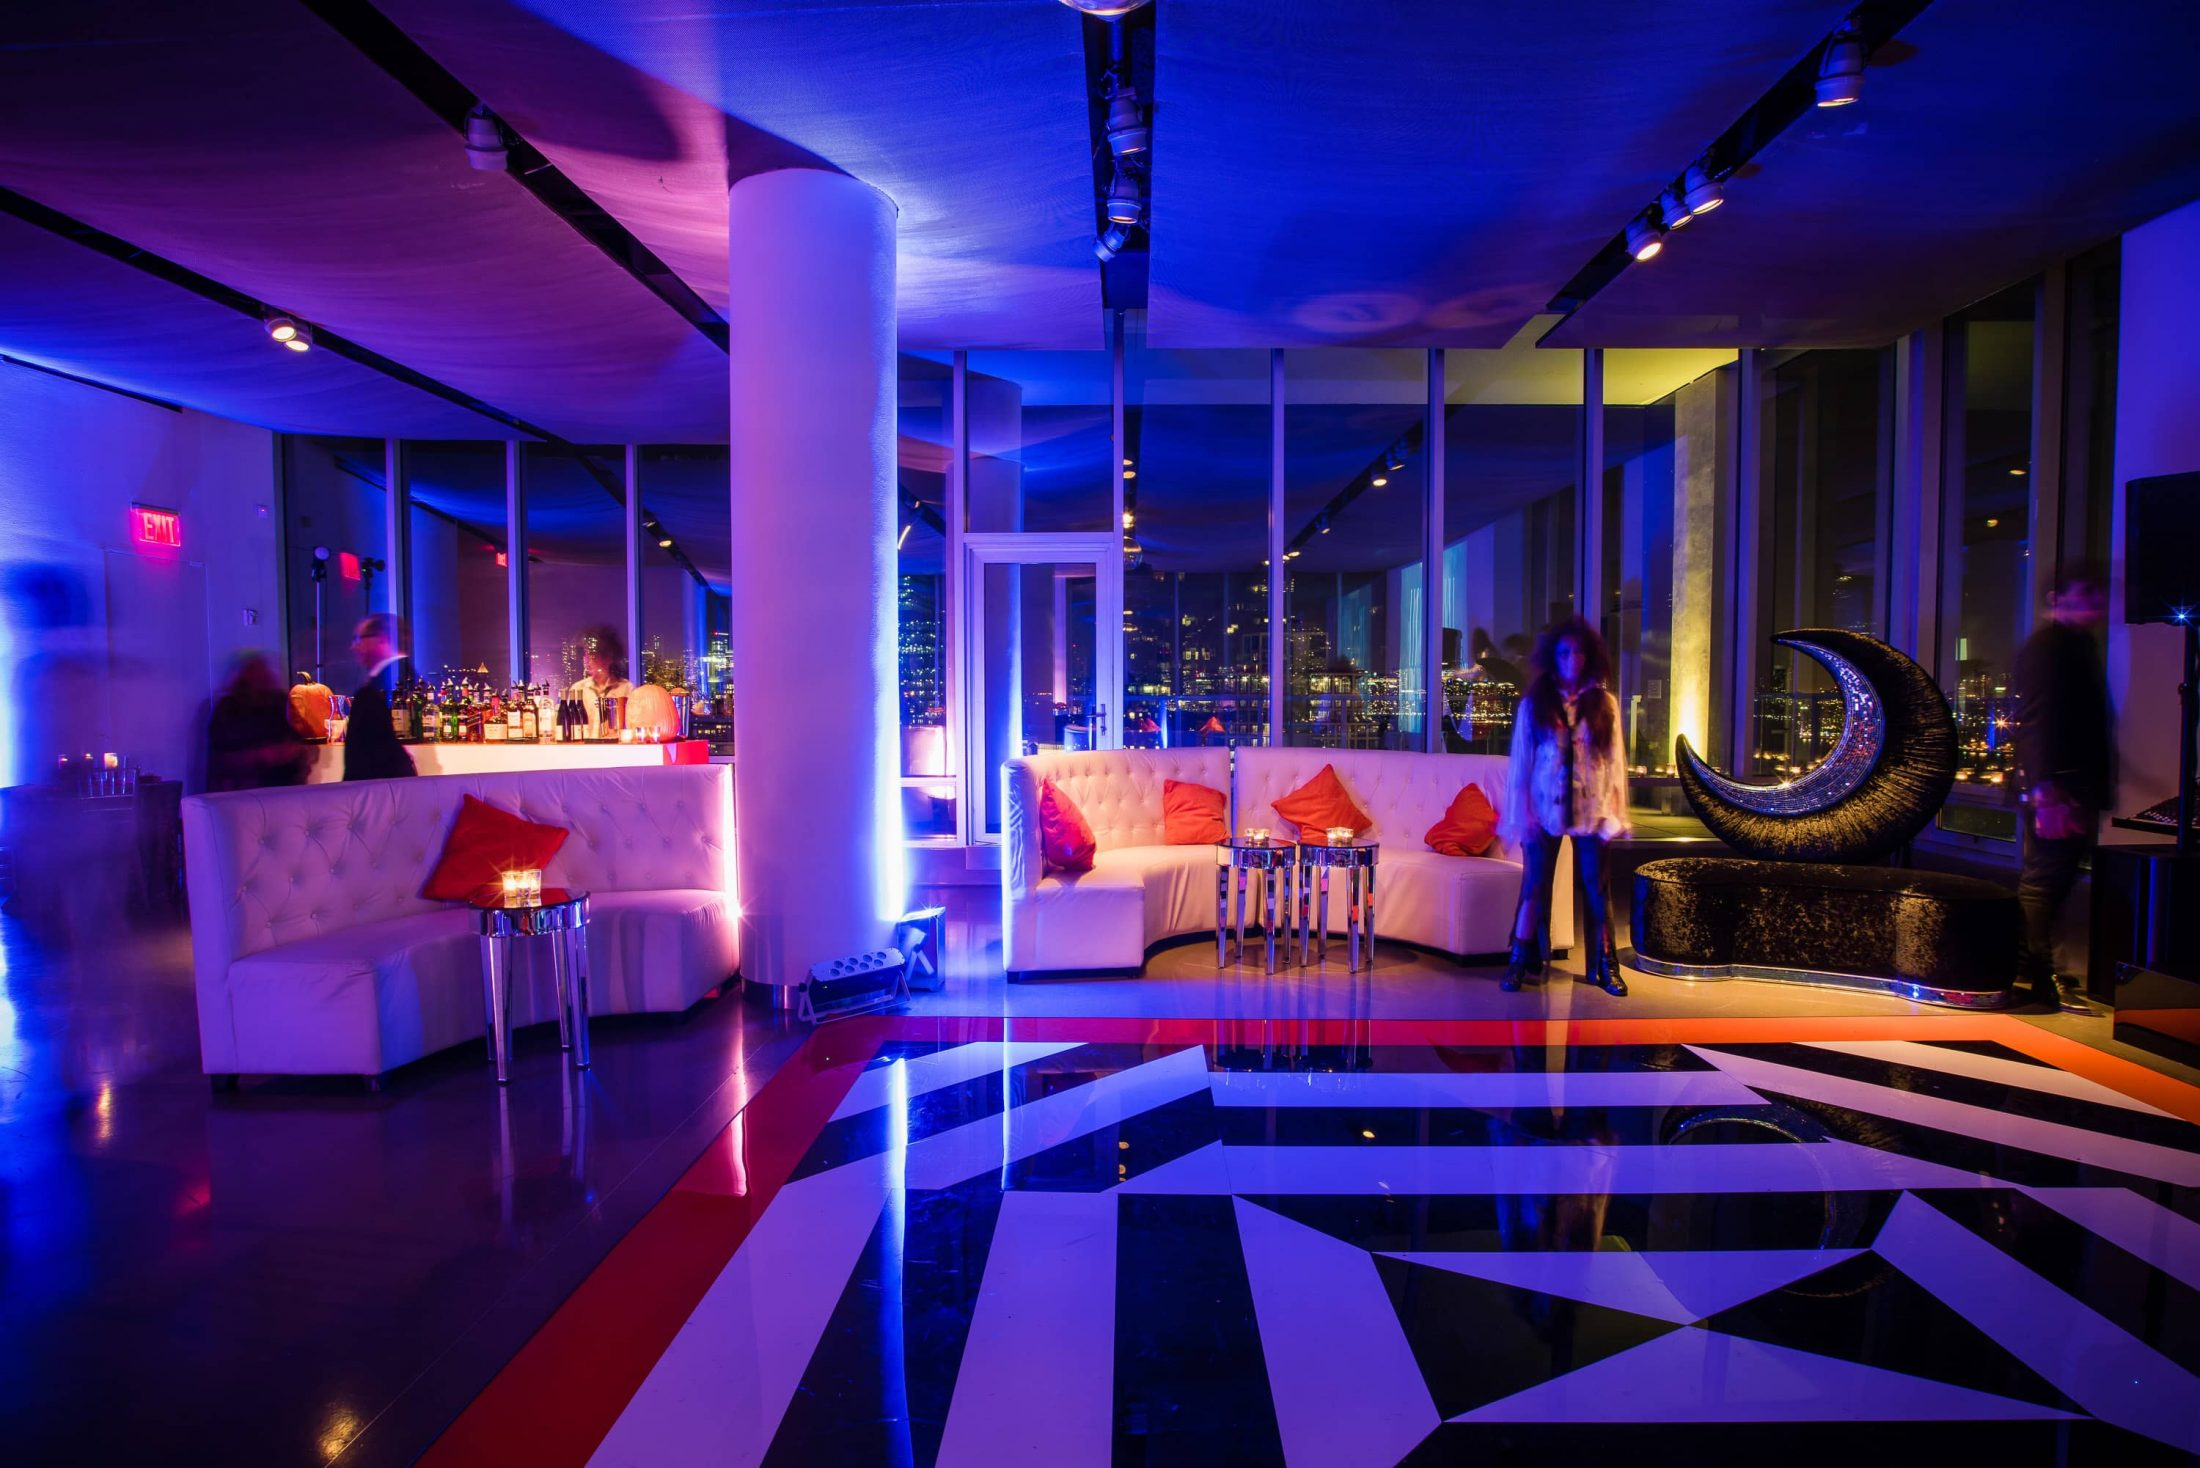 Dance floor and lounge area for the haunted Studio 54 at this epic halloween party at The Standard in NYC | Photo by Gruber Photographers